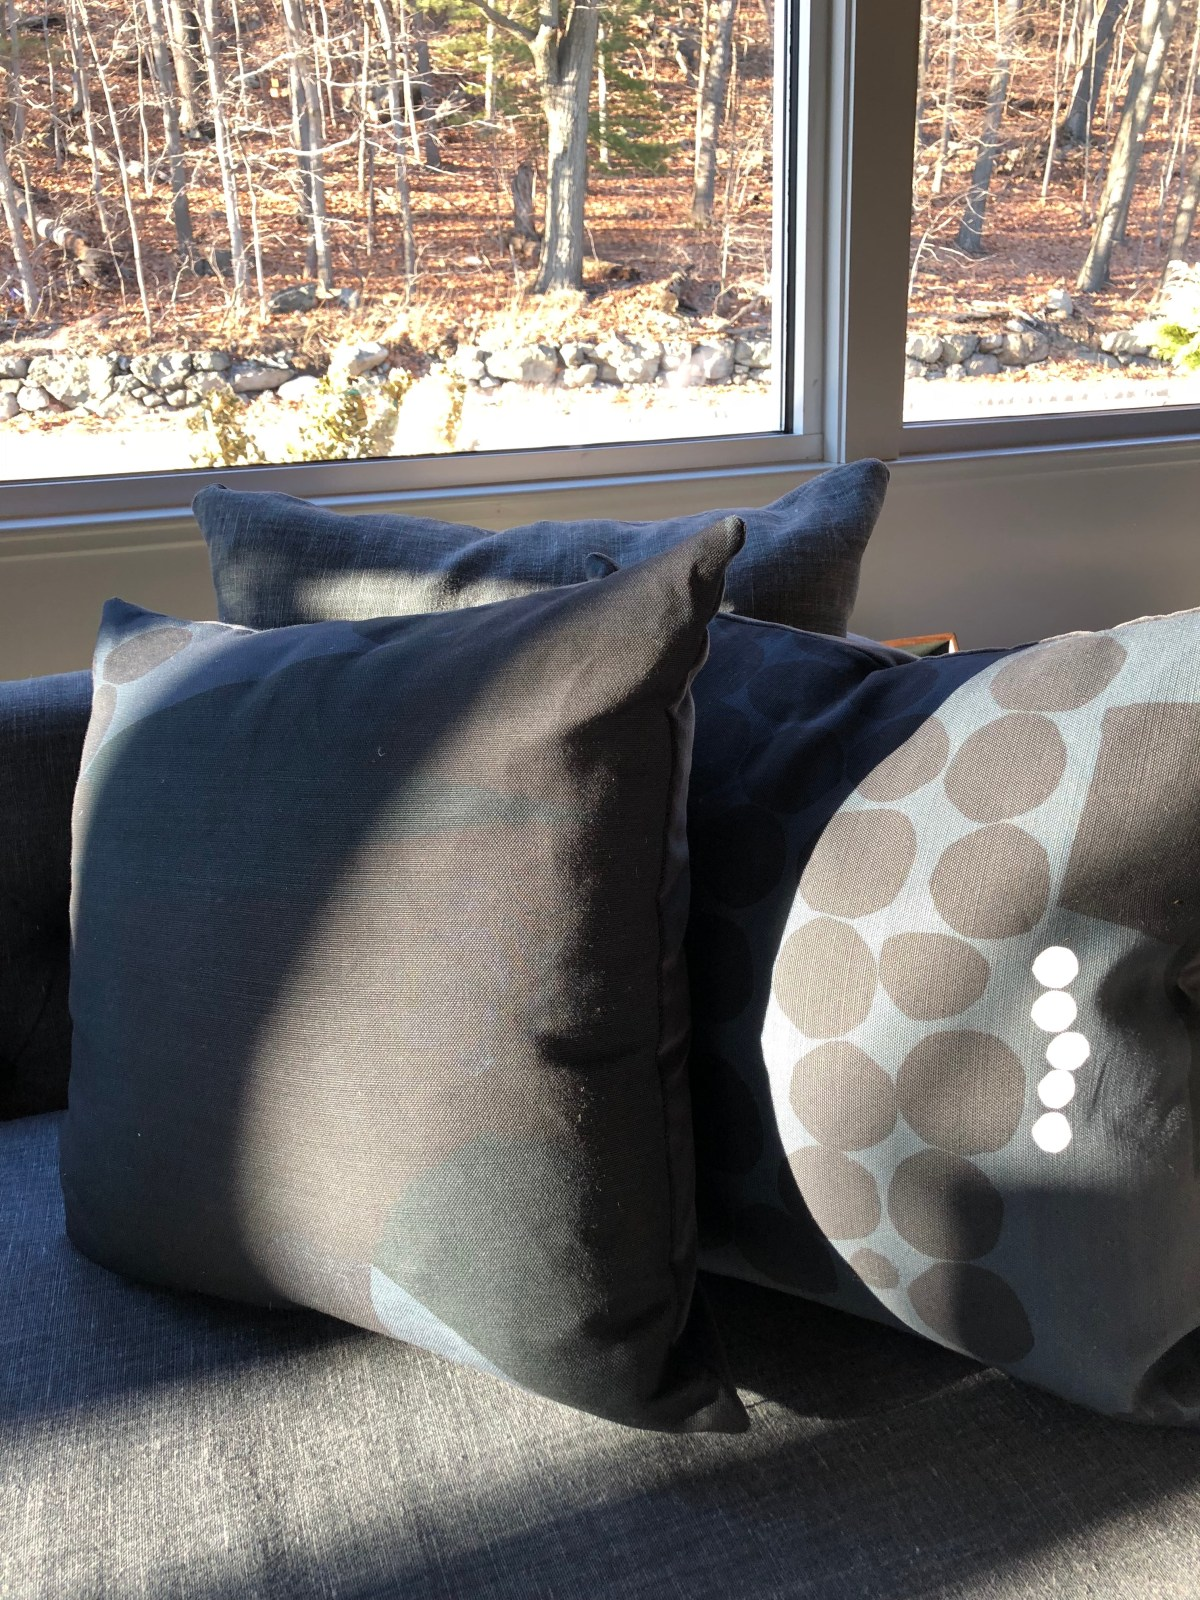 tx-poppy+dandy pillow 4@artefacthome